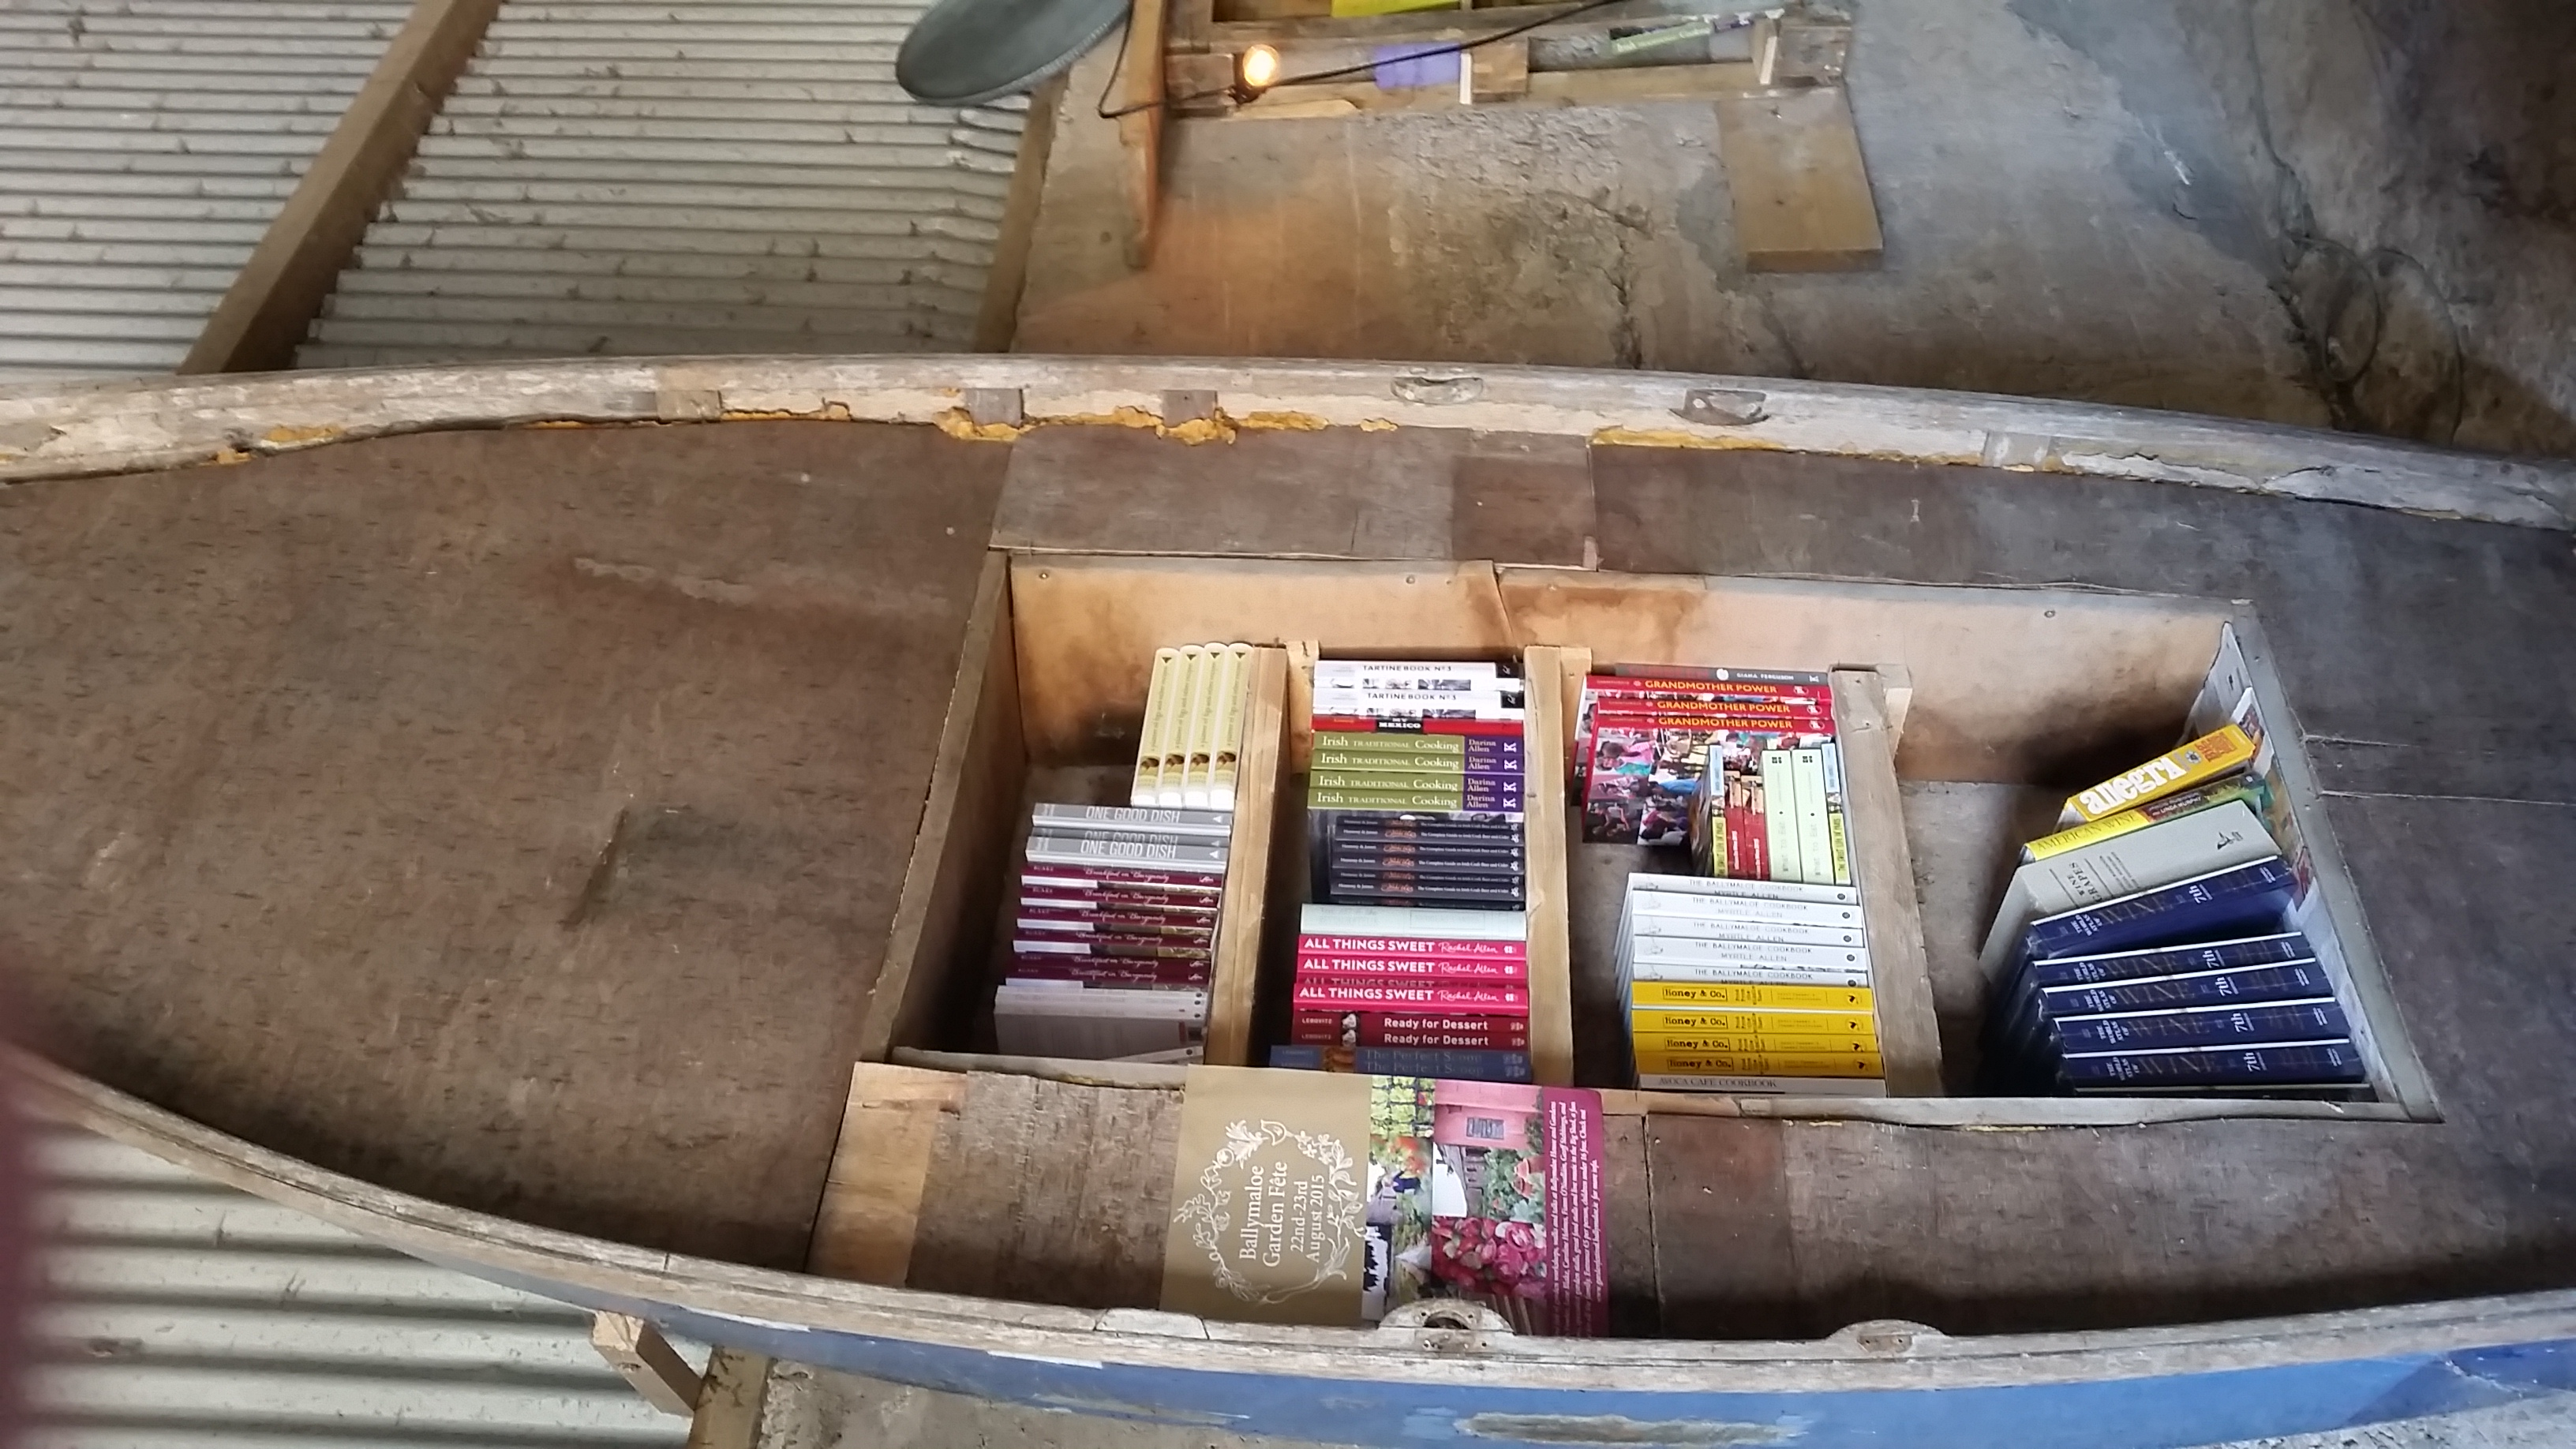 Books in a boat, as you do, in the book shop!